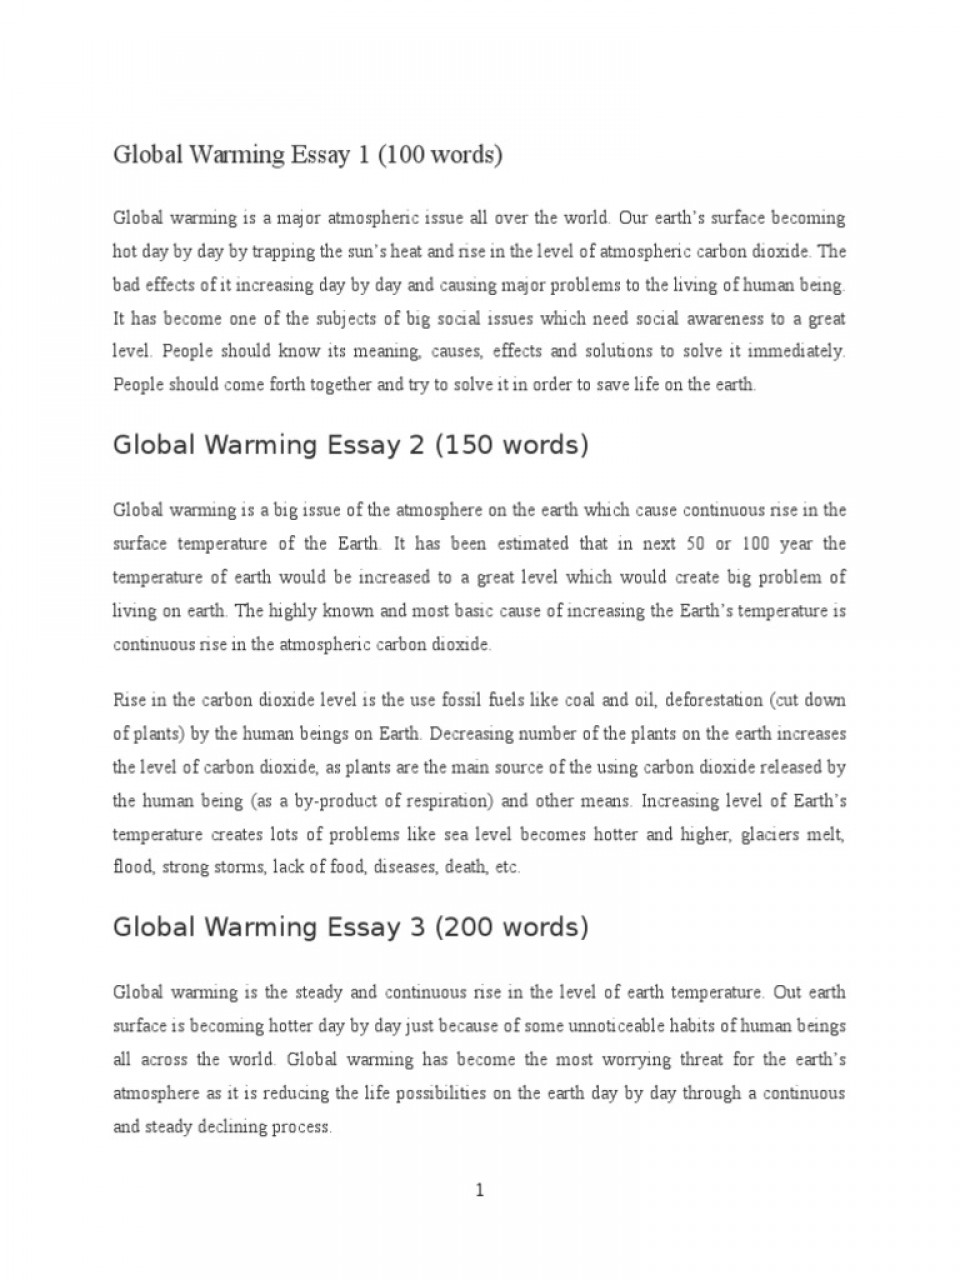 008 Global Warming Essay 1 5882e593b6d87f85288b46ba Unusual Persuasive Thesis Free Research Paper Topics 960